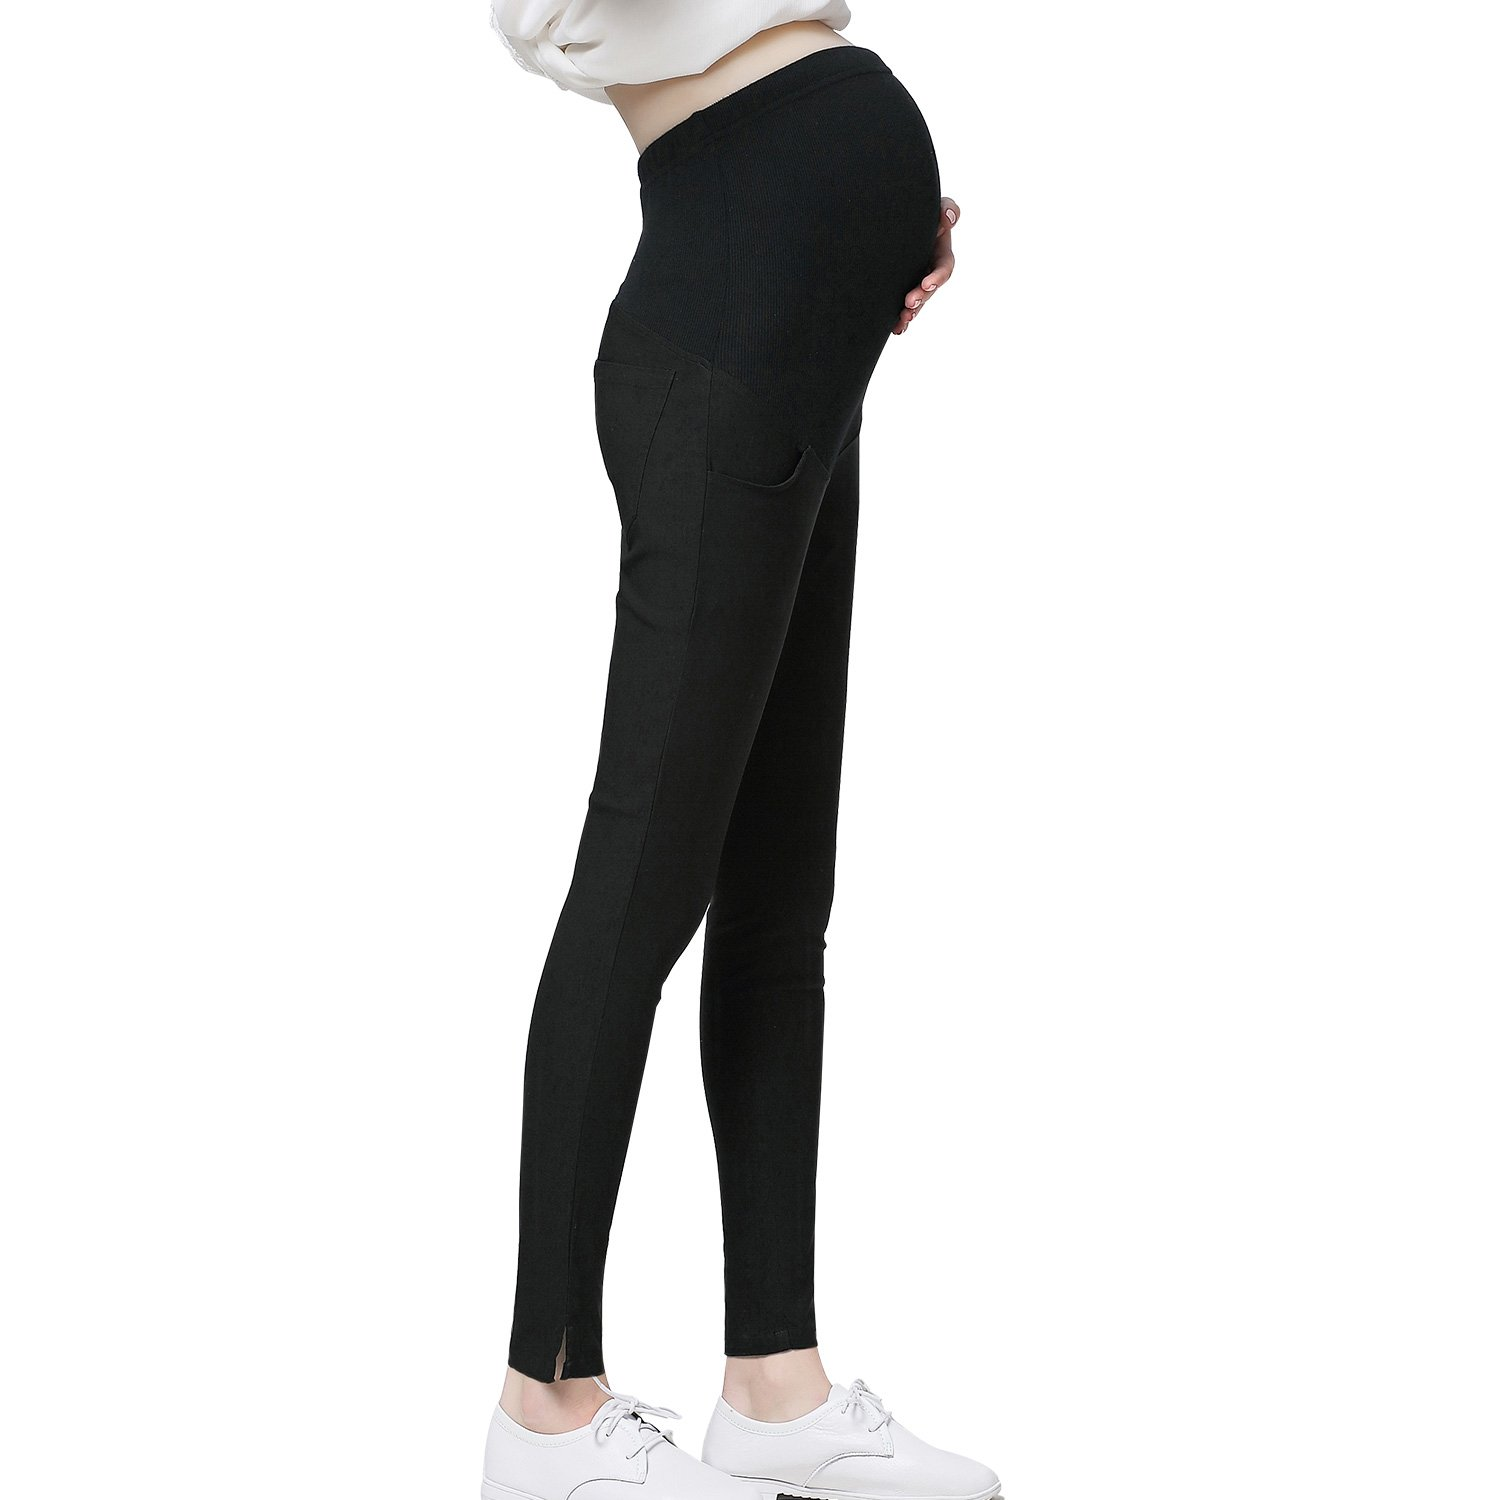 JOYNCLEON Pregnant Women Work Pants Stretchy Maternity Skinny Ankle Trousers Slim for Women (Label M = US 0-4 fit for Hip 33.5'', Black)